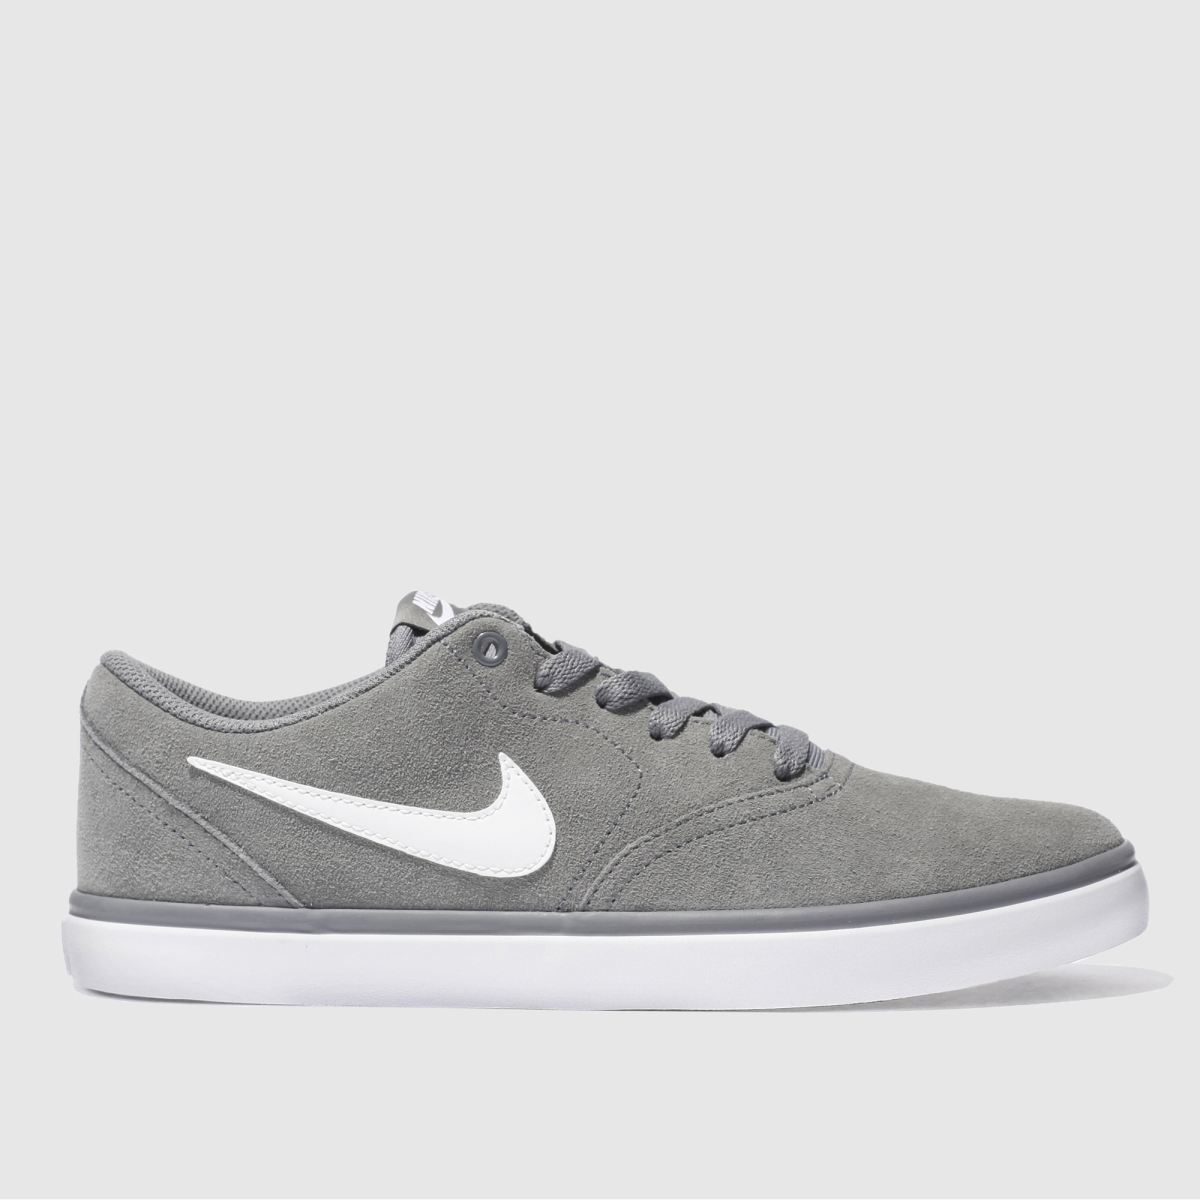 Buy Nike Skateboarding Shoes